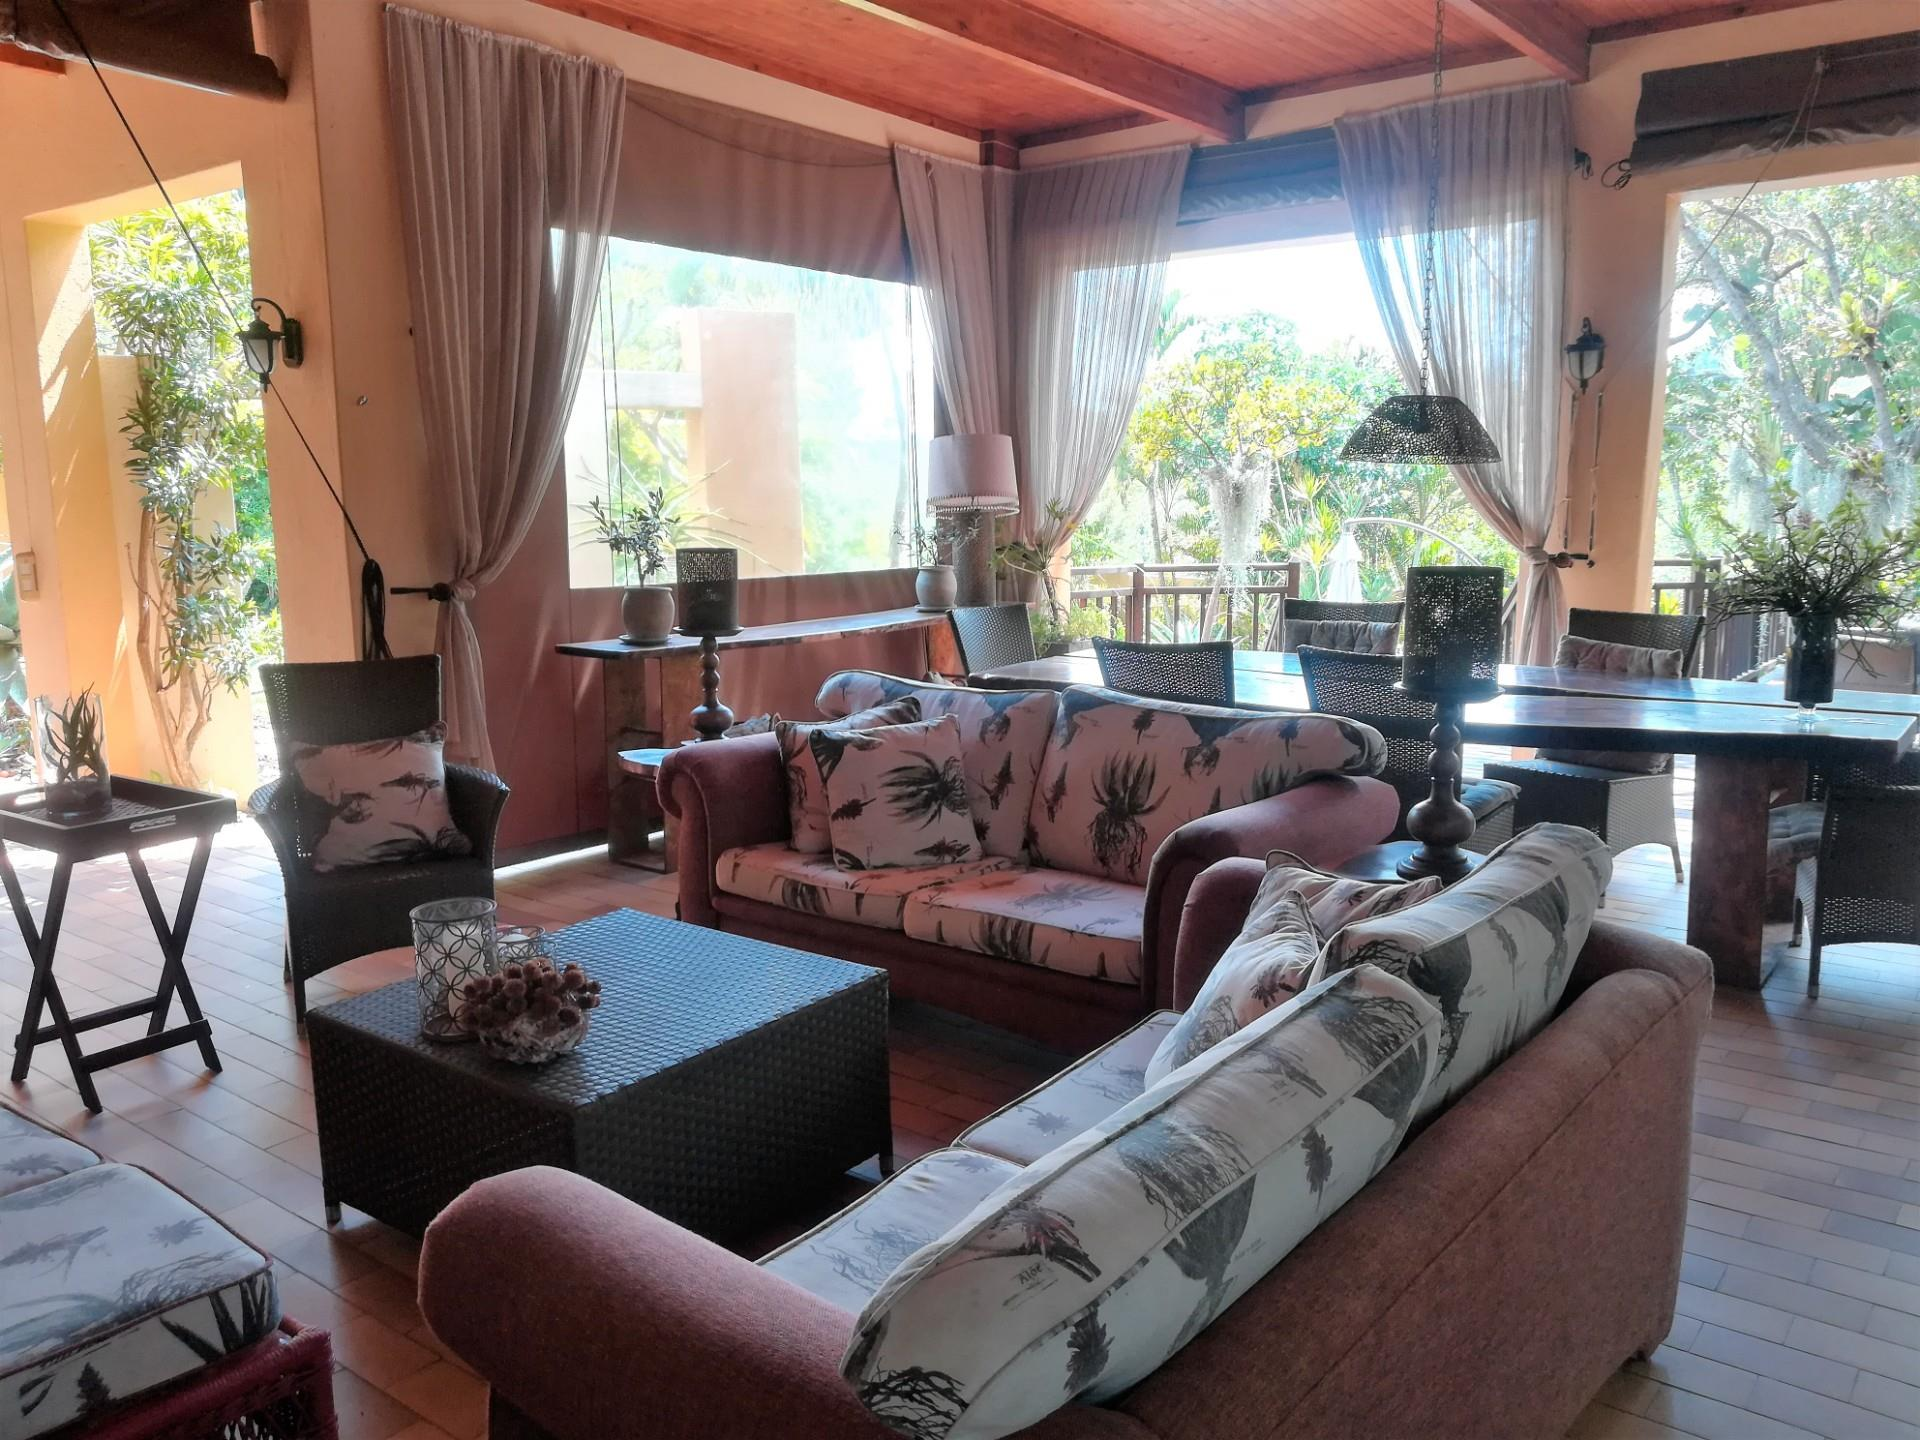 4 Bedroom House For Sale in Nelspruit Ext 5